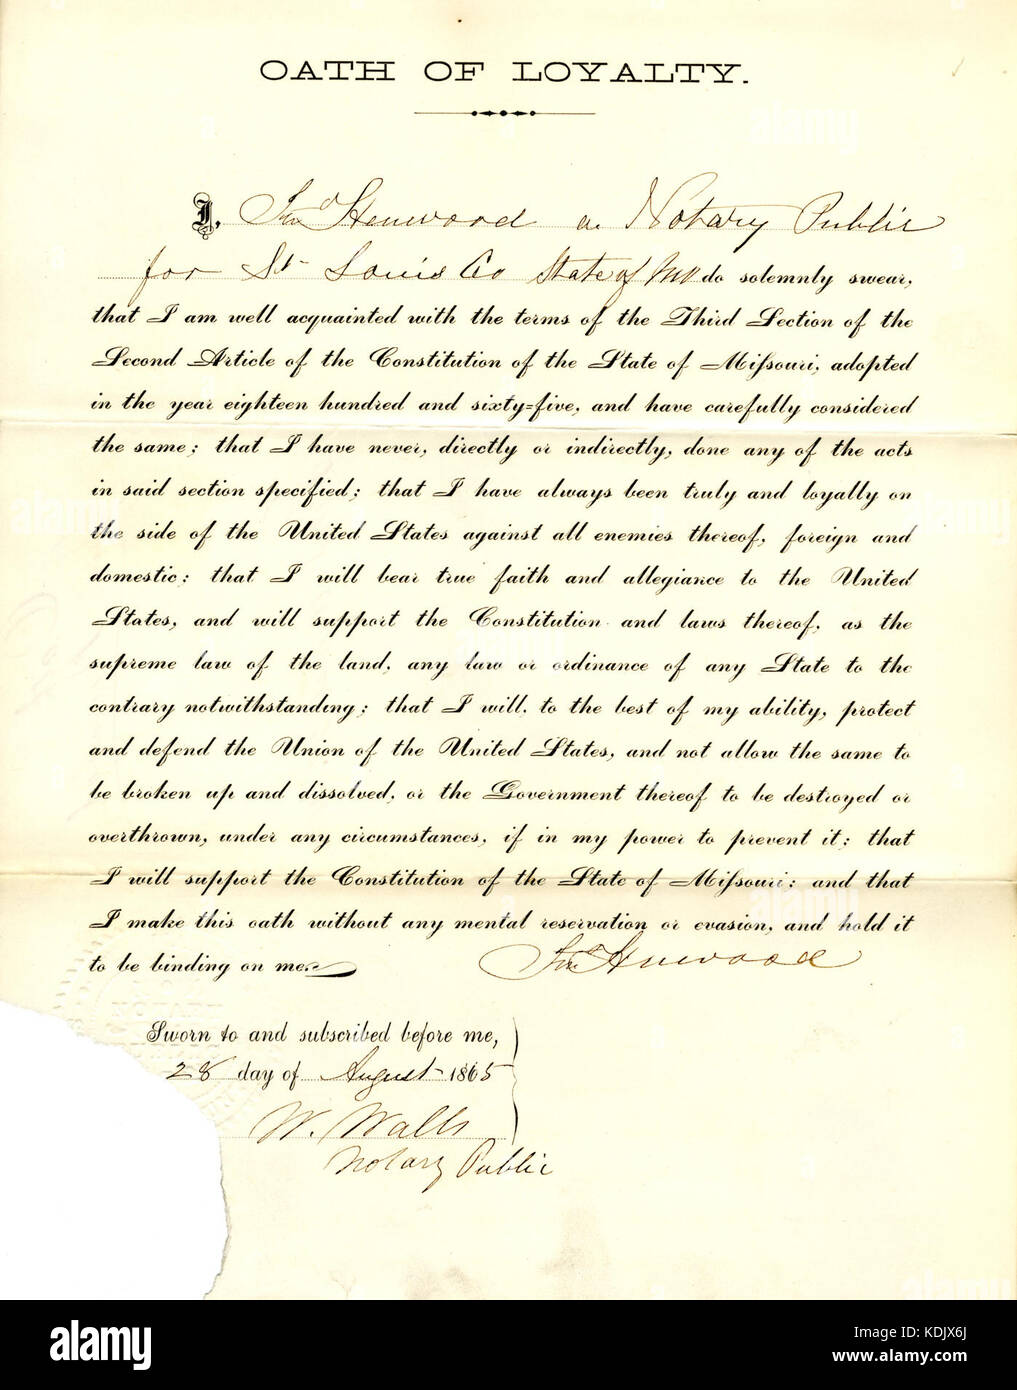 Loyalty oath of Jno. Henwood of Missouri, County of St. Louis Stock Photo